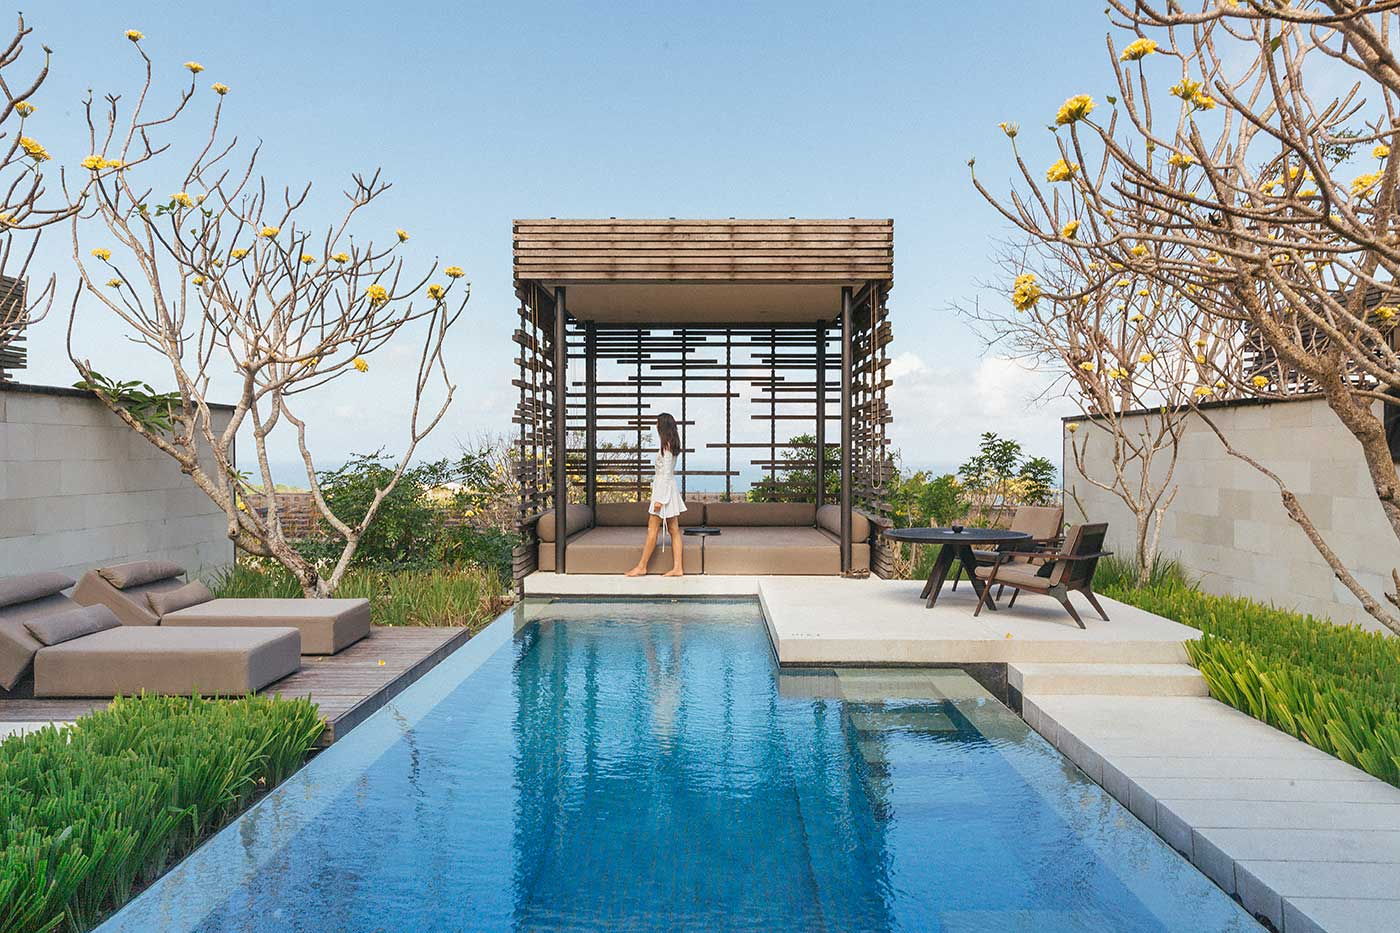 Where to Stay in Bali, a first timers guide to planning a trip to Bali with hotel reviews